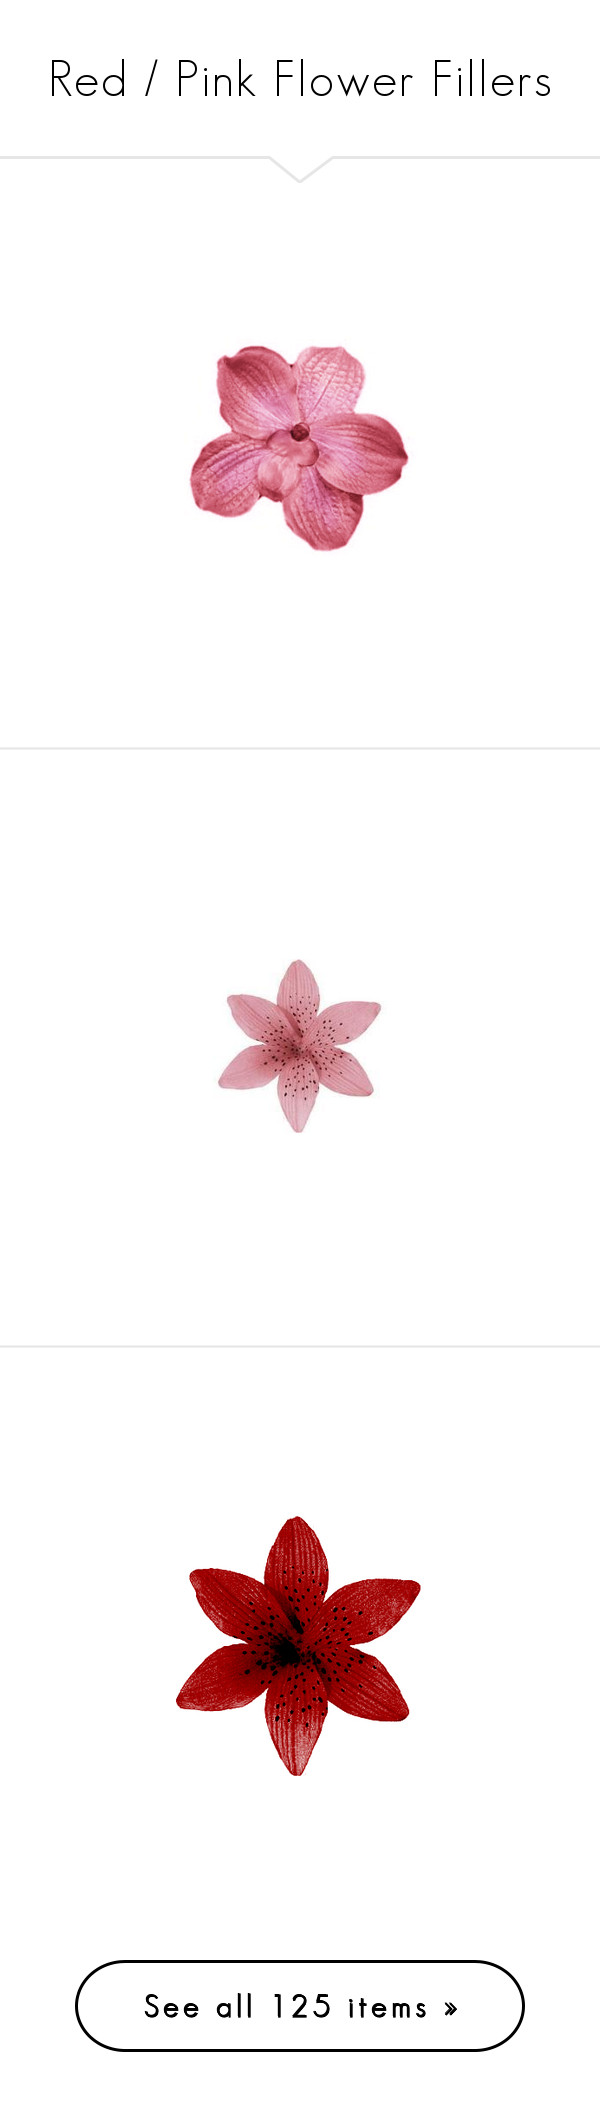 Red pink flower fillers by zl daydreaming liked on polyvore red pink flower fillers by zl daydreaming liked on polyvore featuring mightylinksfo